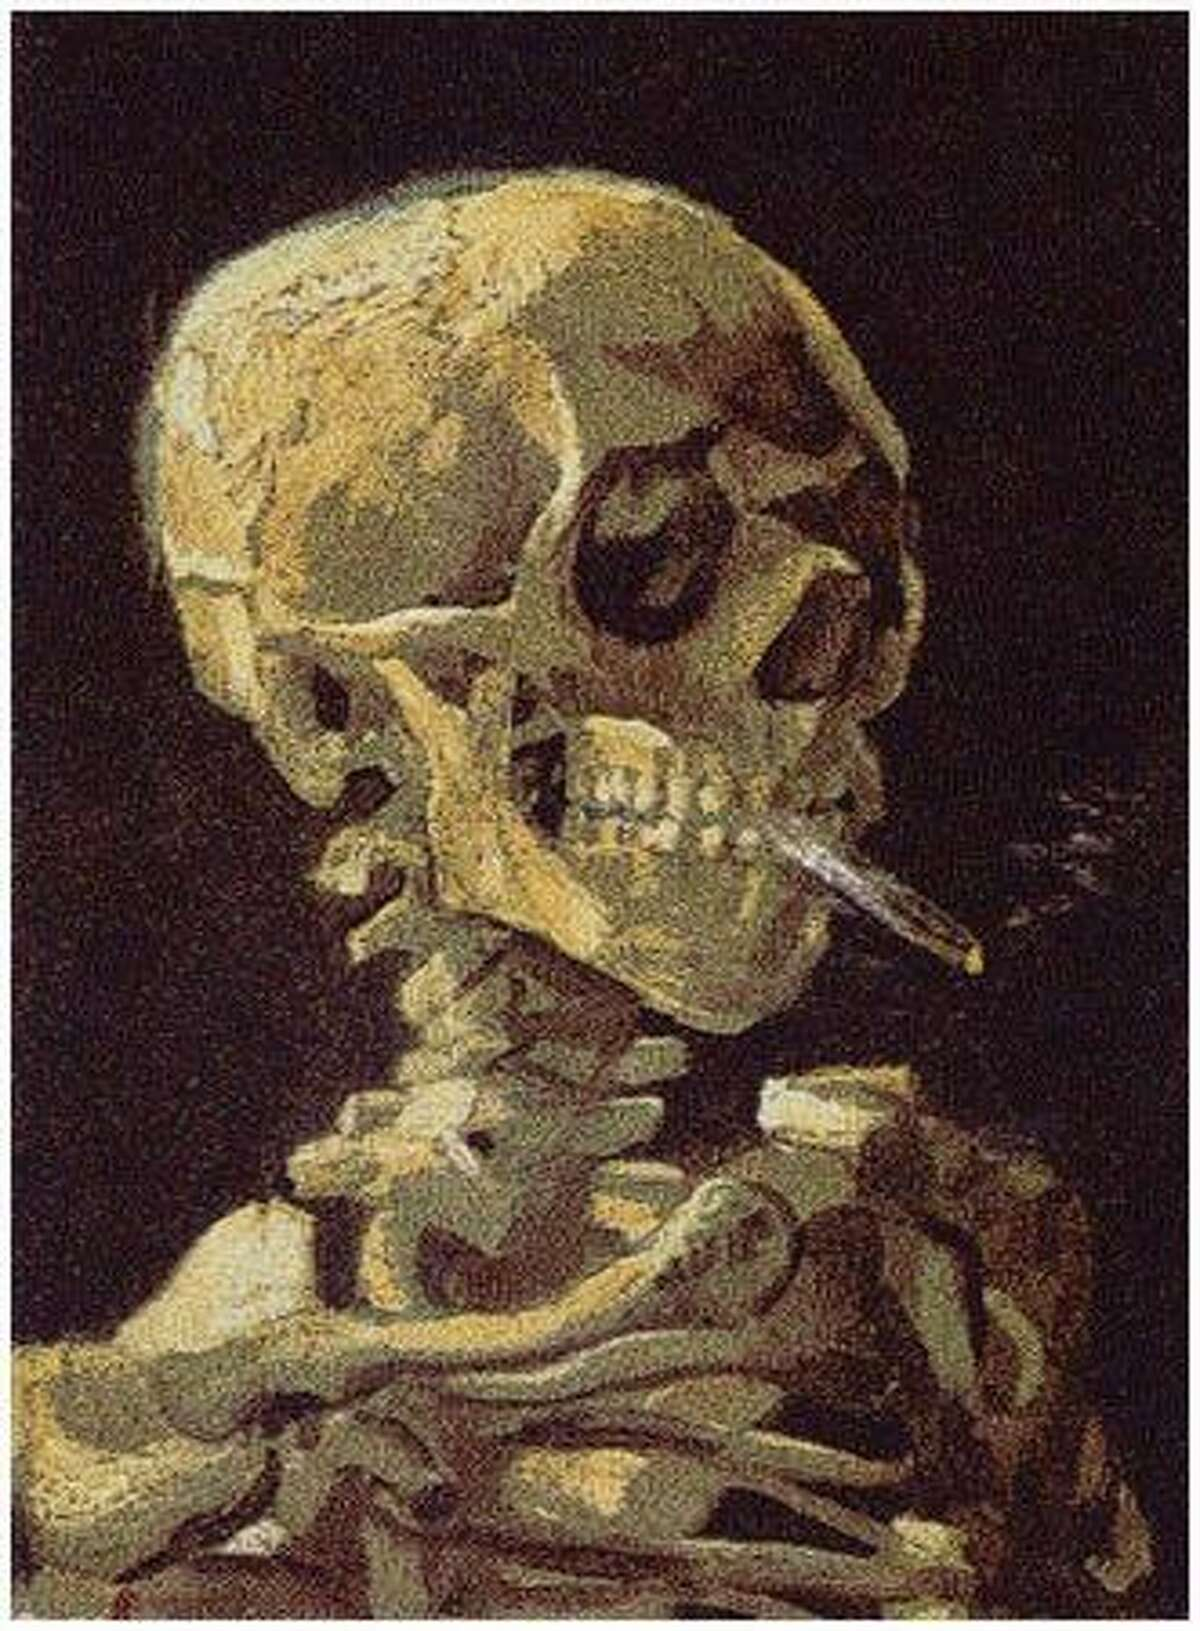 Skull with Cigarette, 2007: Shows 200,000 packs of cigarettes, equal to the number of Americans who then died from cigarette smoking every six months. (Chris Jordan)